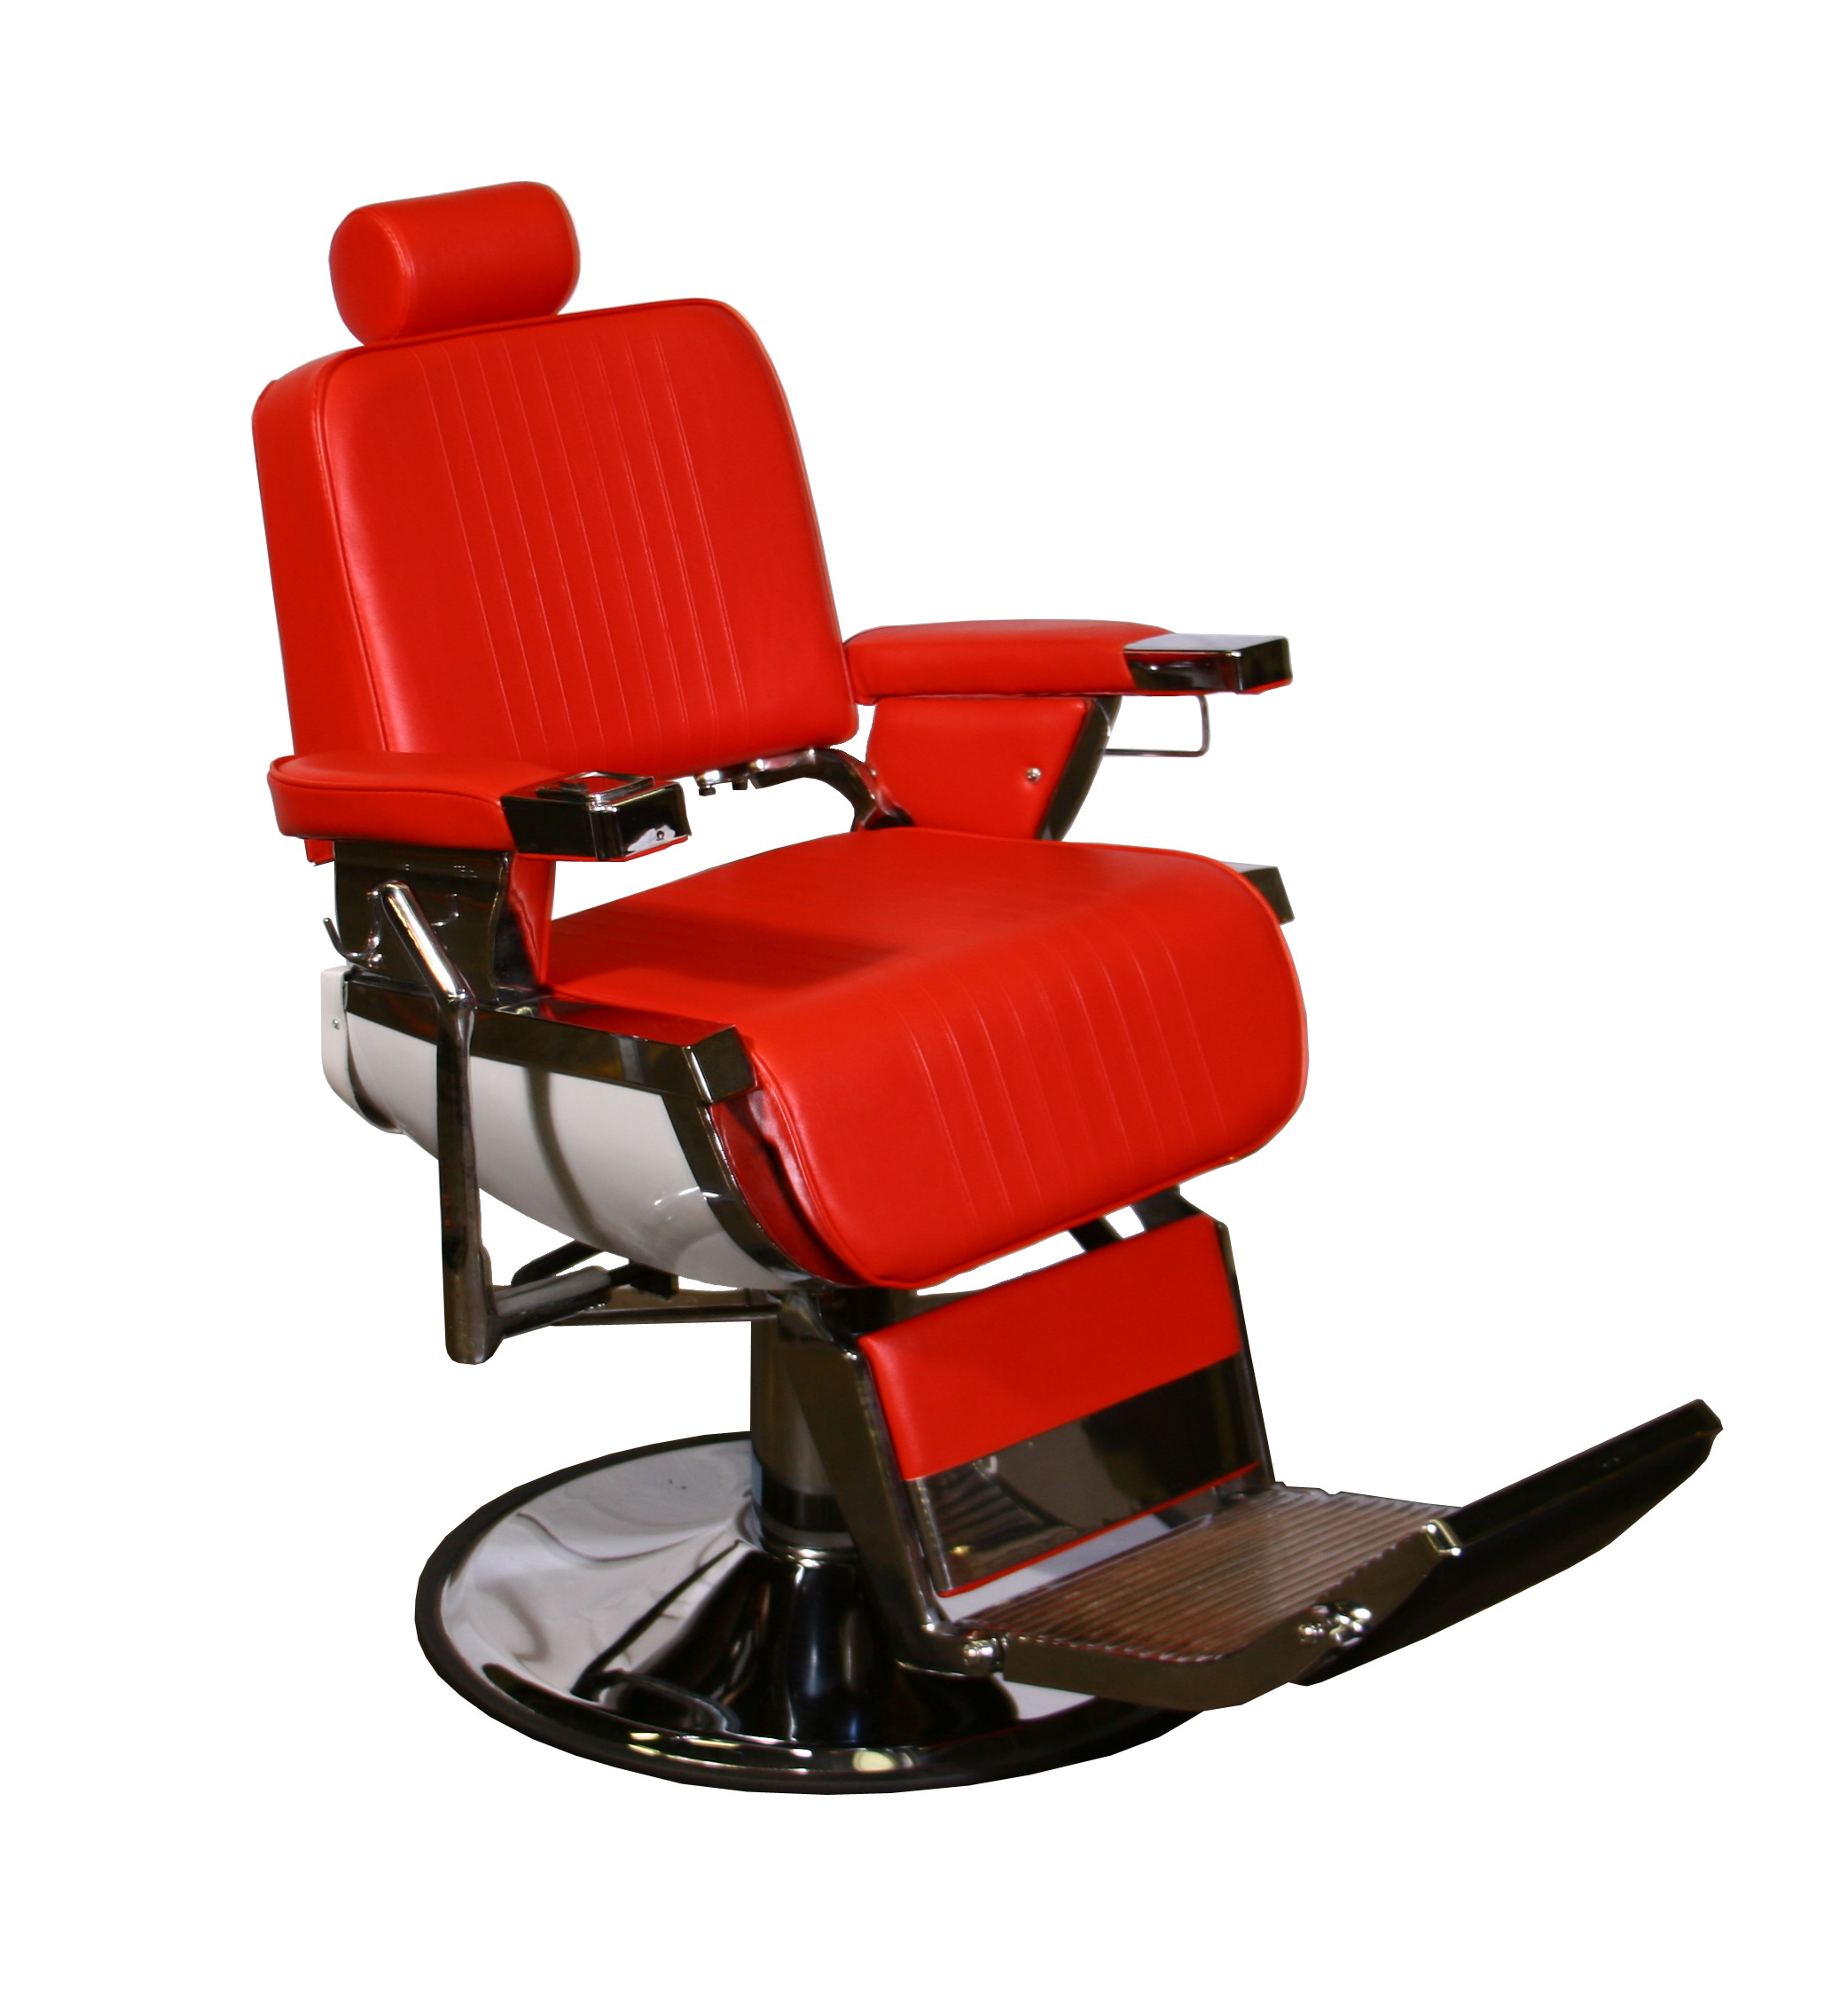 Barber chair png - Contact Customer Service